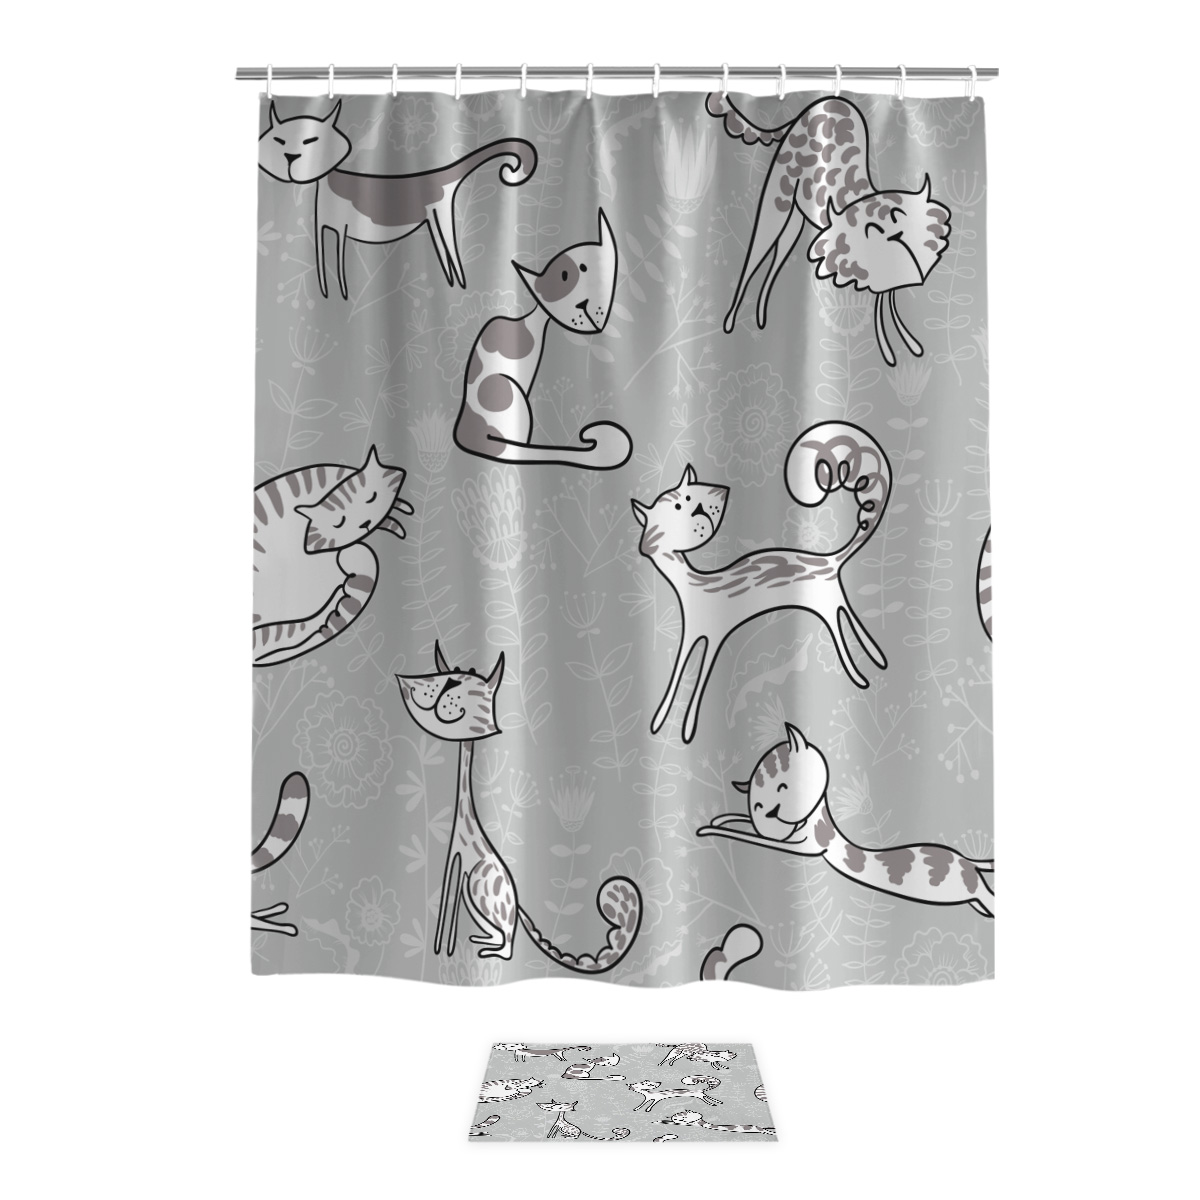 Cartoon Cat Theme Waterproof Fabric Home Decor Shower Curtain Bathroom Mat